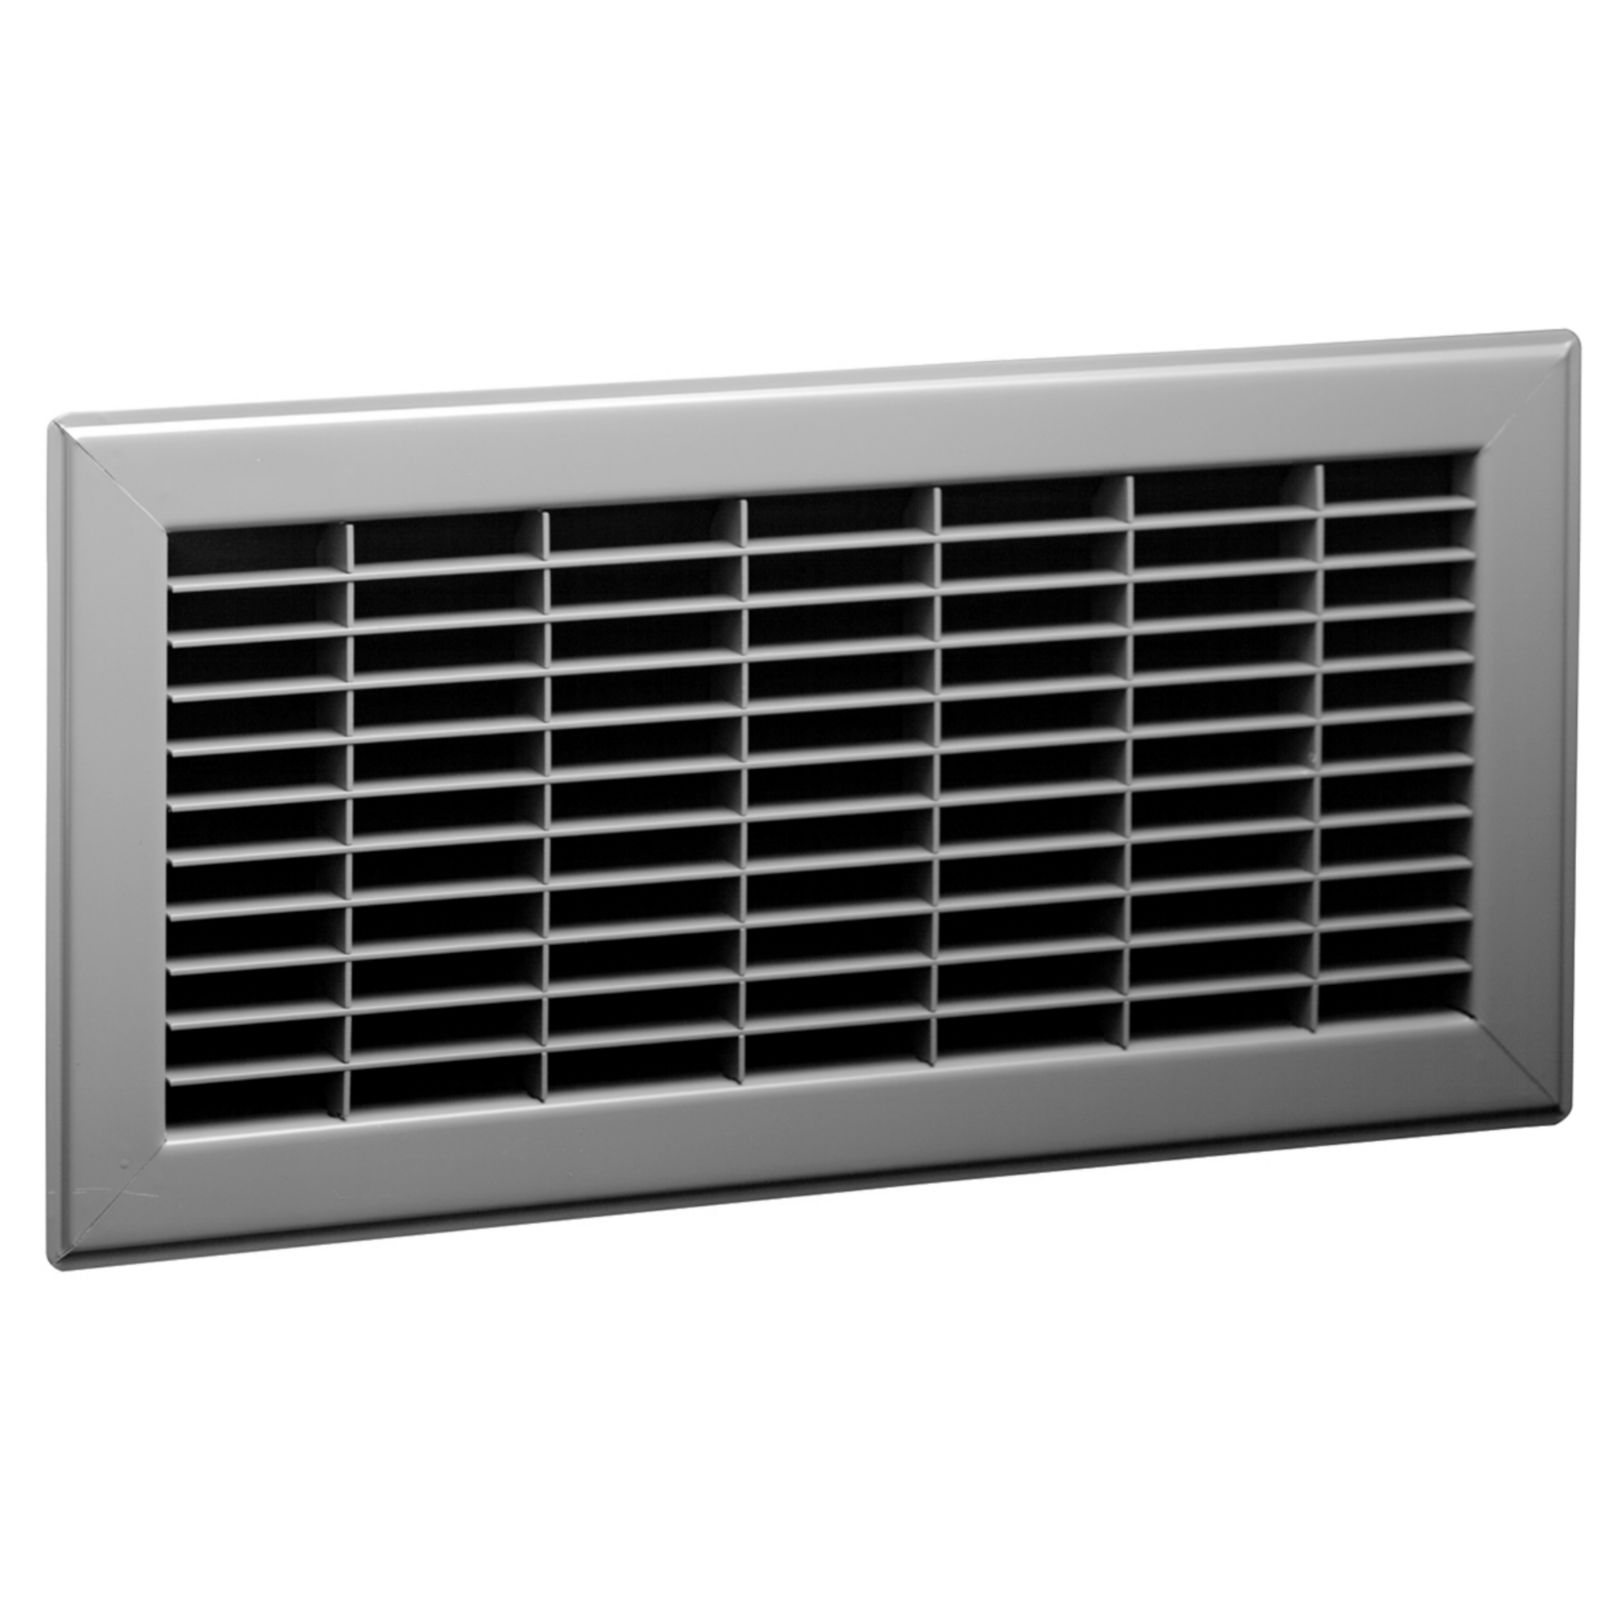 "Lima 16963 - #825 Return Floor Grille, Brown Finish, 14"" X 14"""